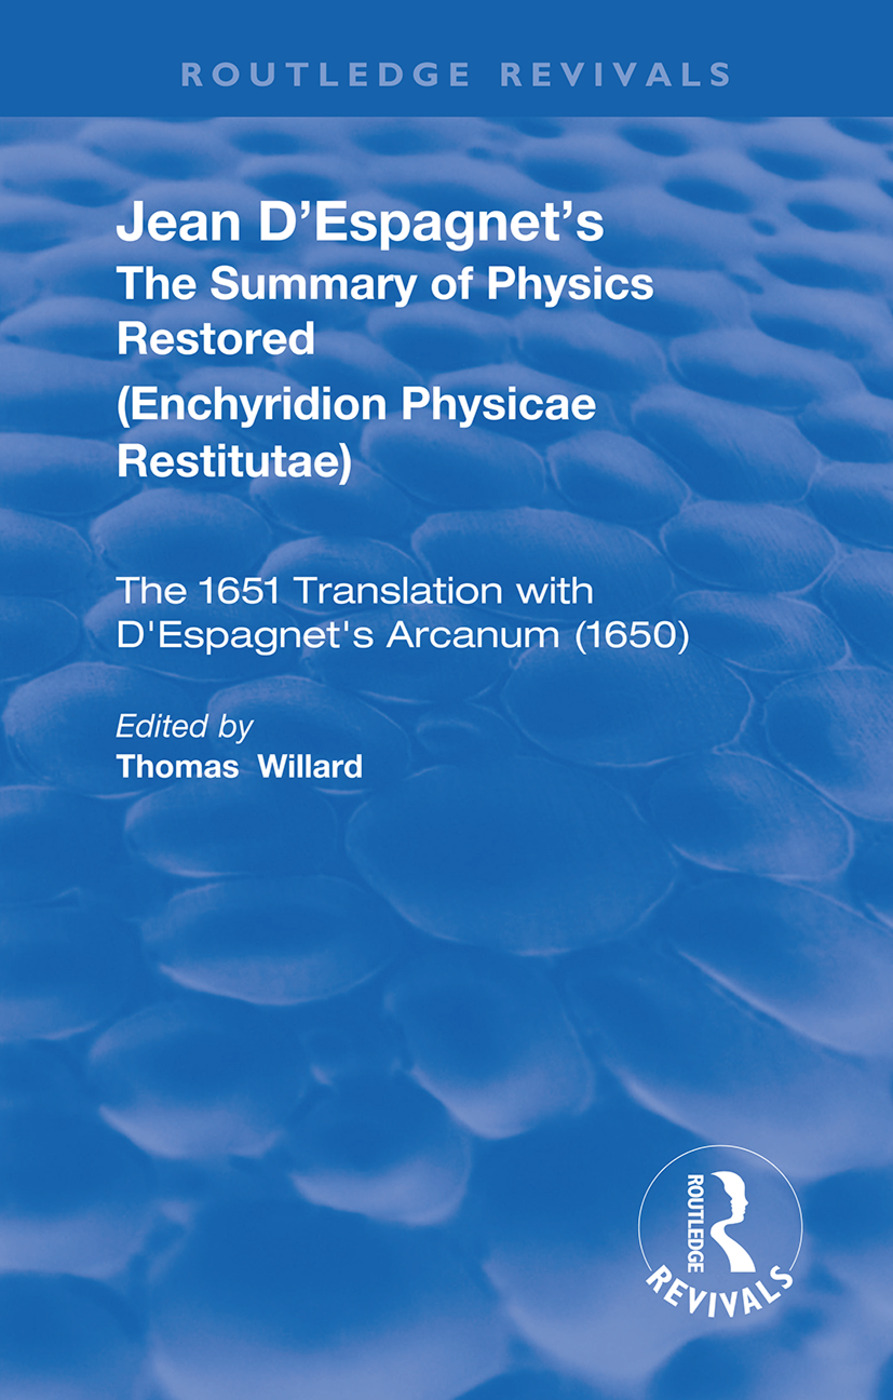 Jean D'Espagnet's The Summary of Physics Restored book cover